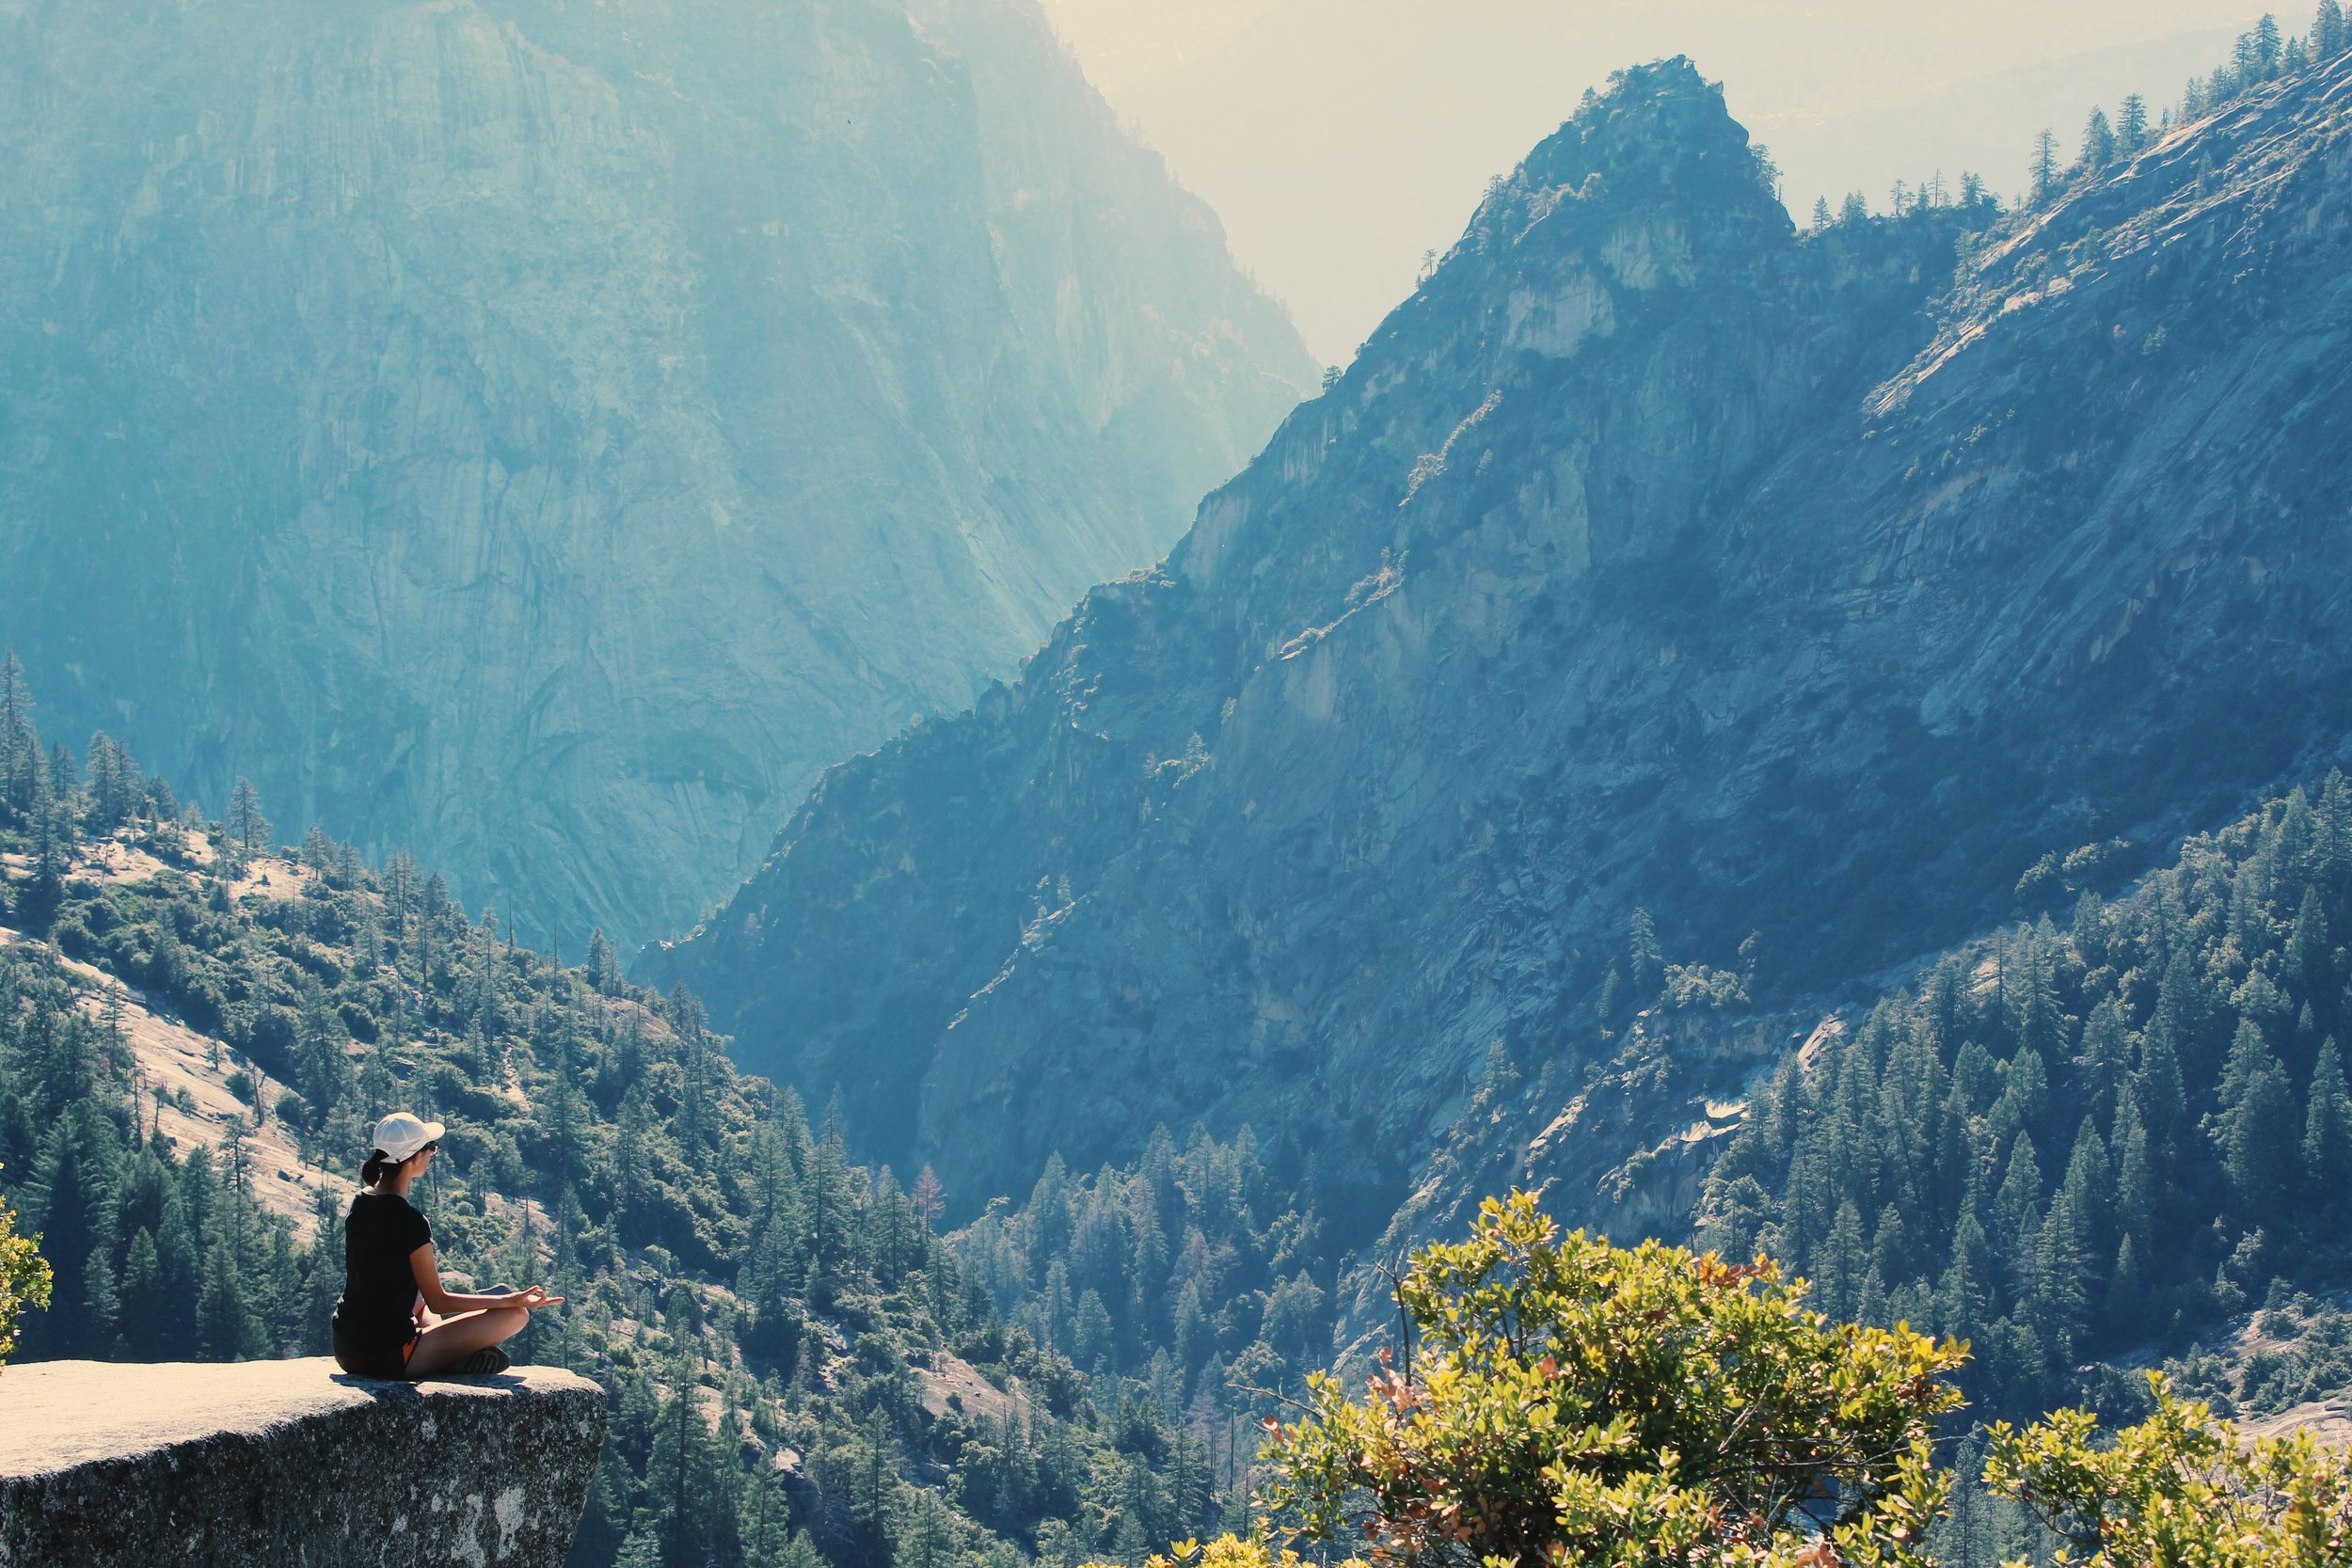 You don't even need to be on the edge of a cliff looking at mountains to meditate! You can do it from home!